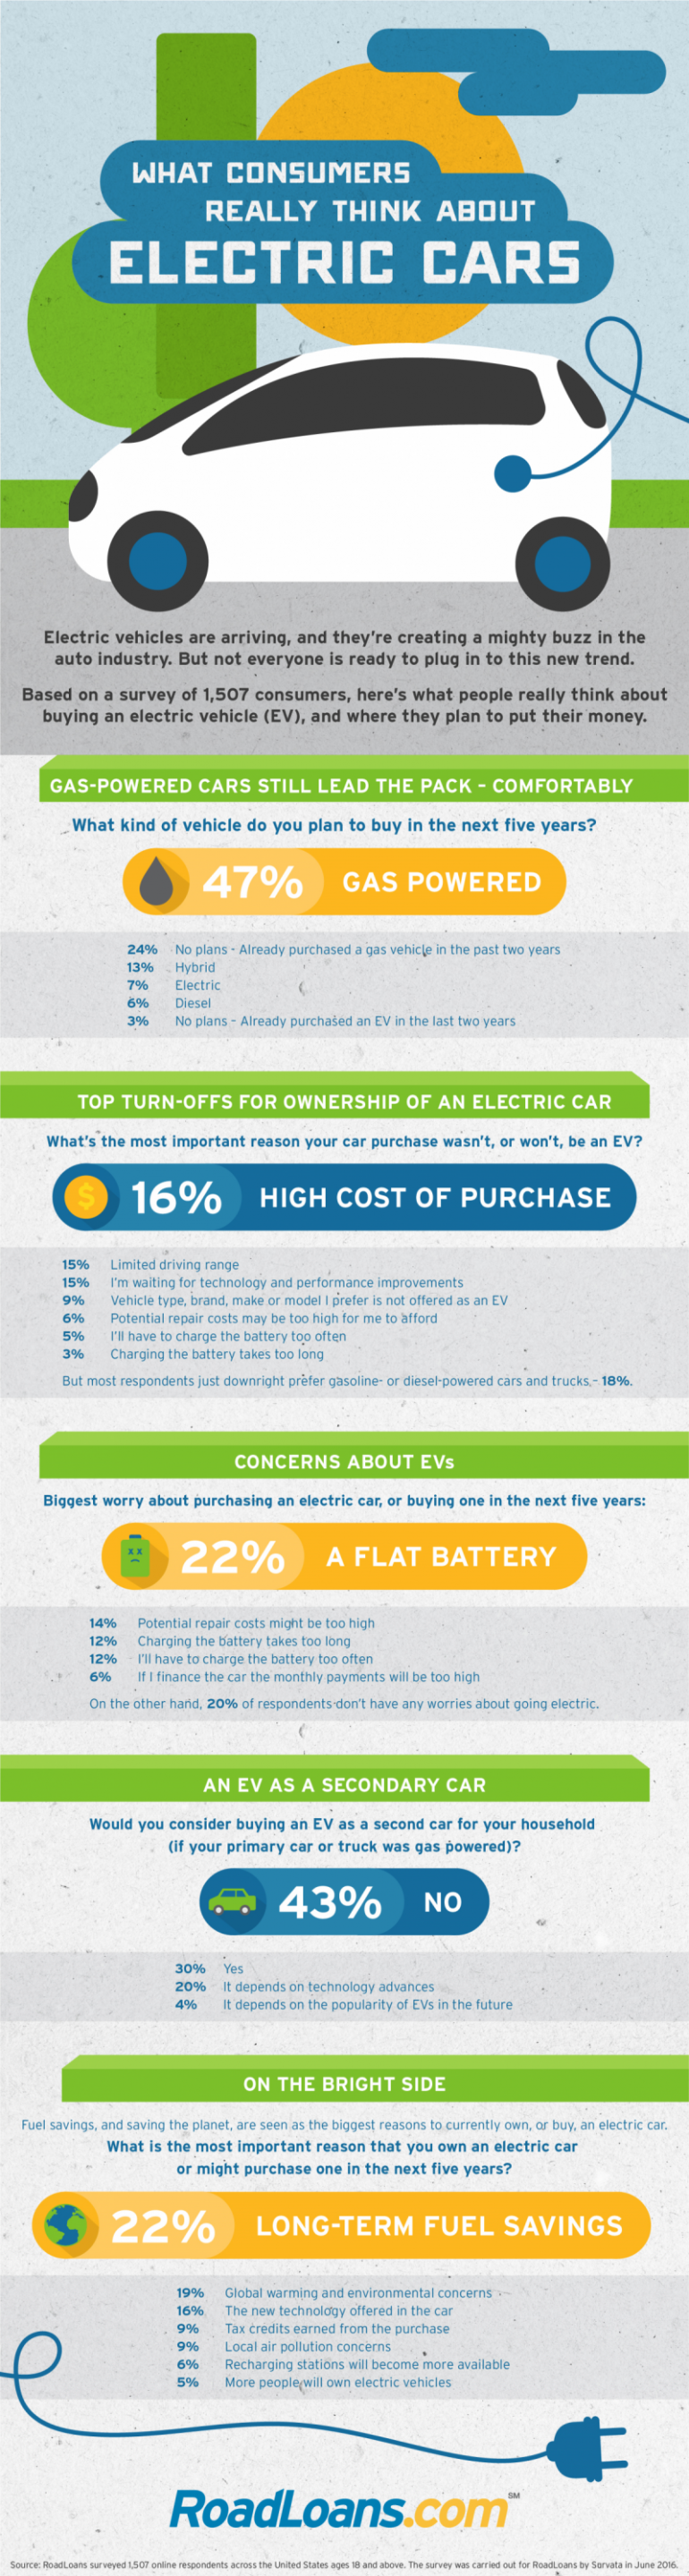 Roadloans Bad Credit Auto Loans >> What Consumers Really Think About Electric Cars | RoadLoans